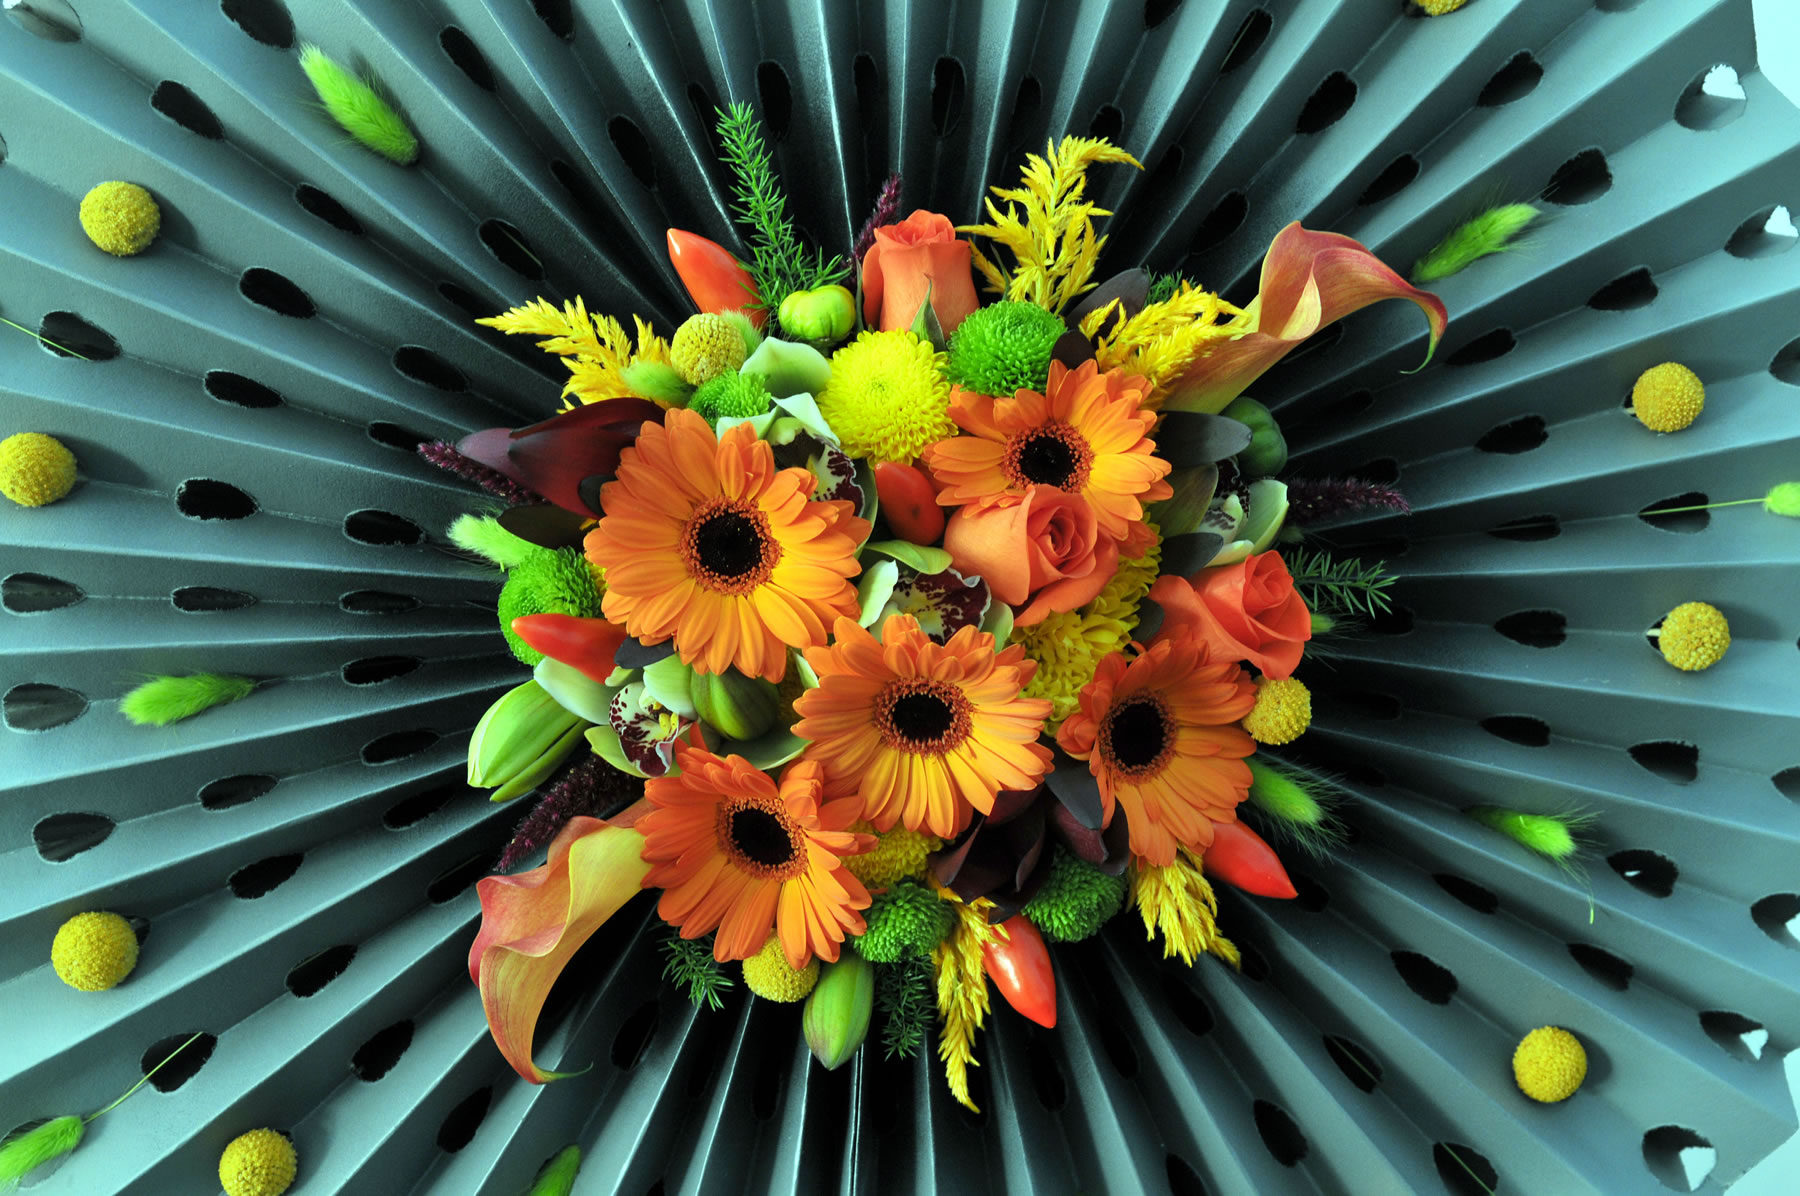 Harrogate Autumn Flower Show Event Harrogate North Yorkshire Welcome To Yorkshire